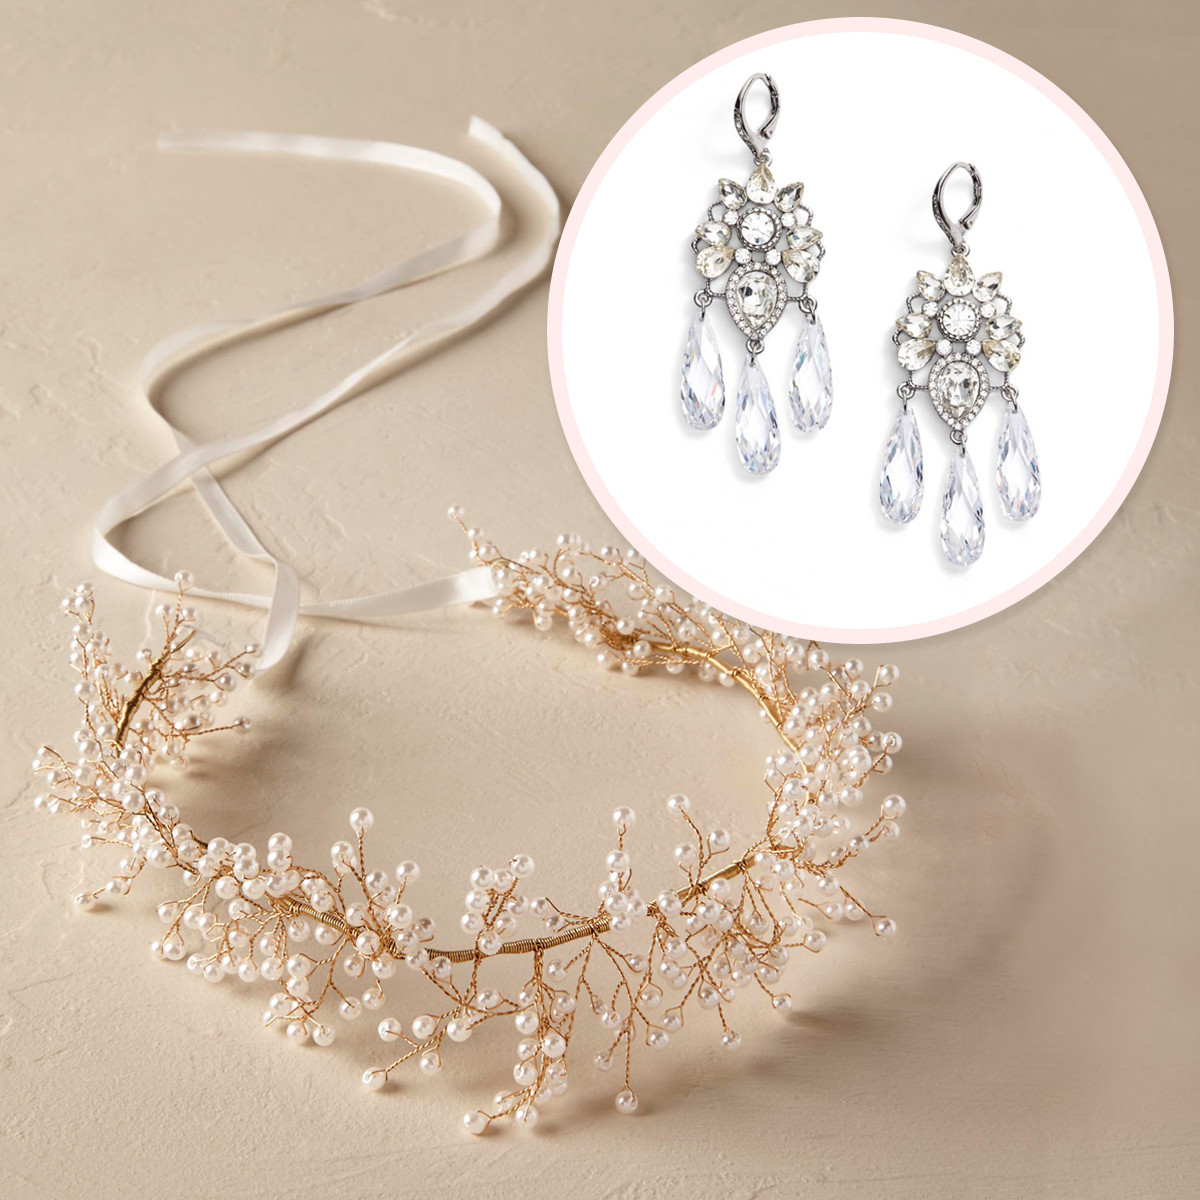 A pair of a diamond earrings and a flowery gold and white headband. photo